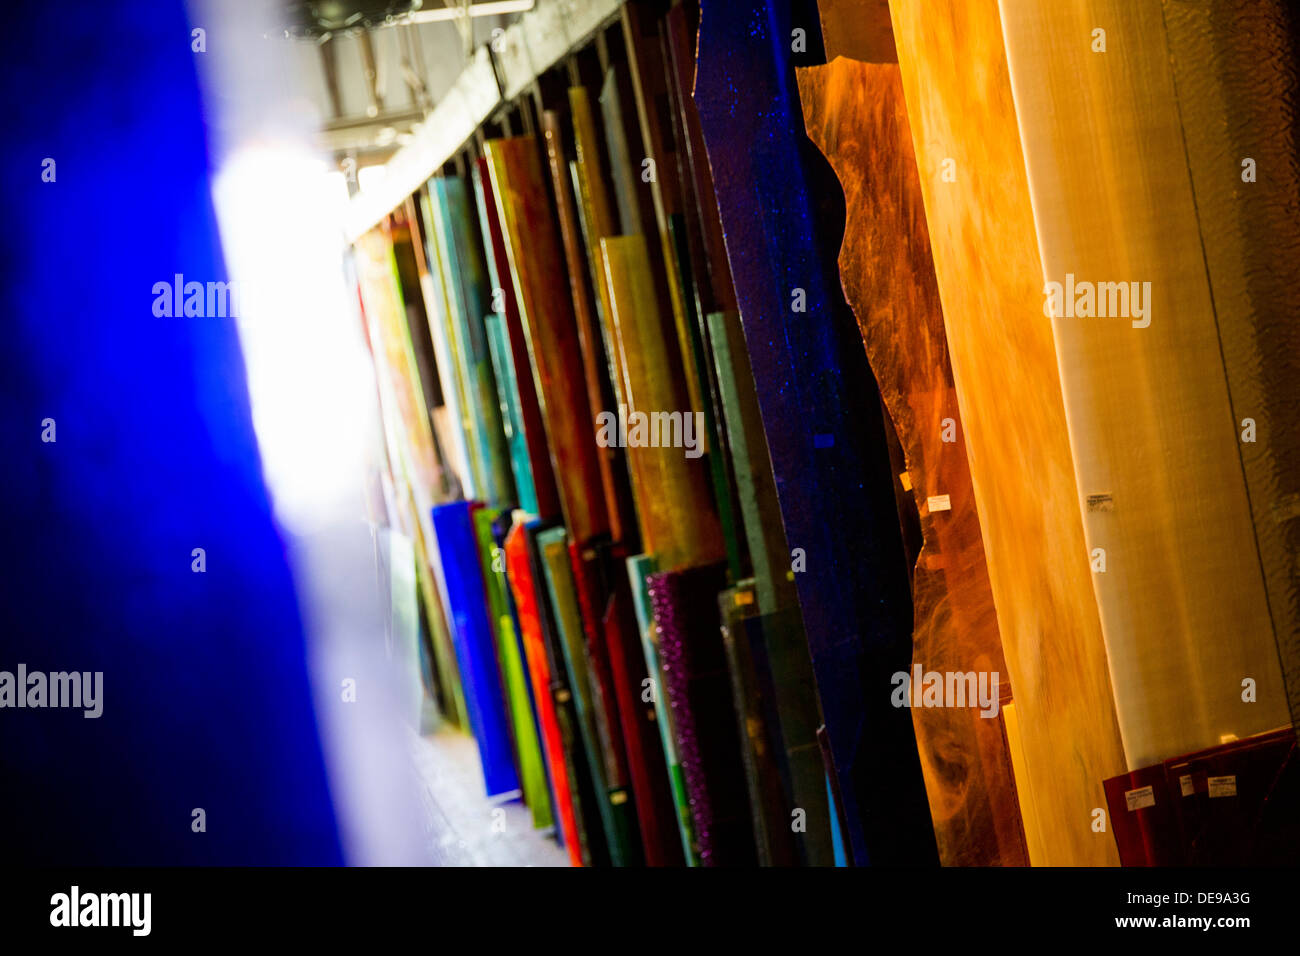 Stained glass panels in storage at the Wissmach Glass Company factory.  - Stock Image